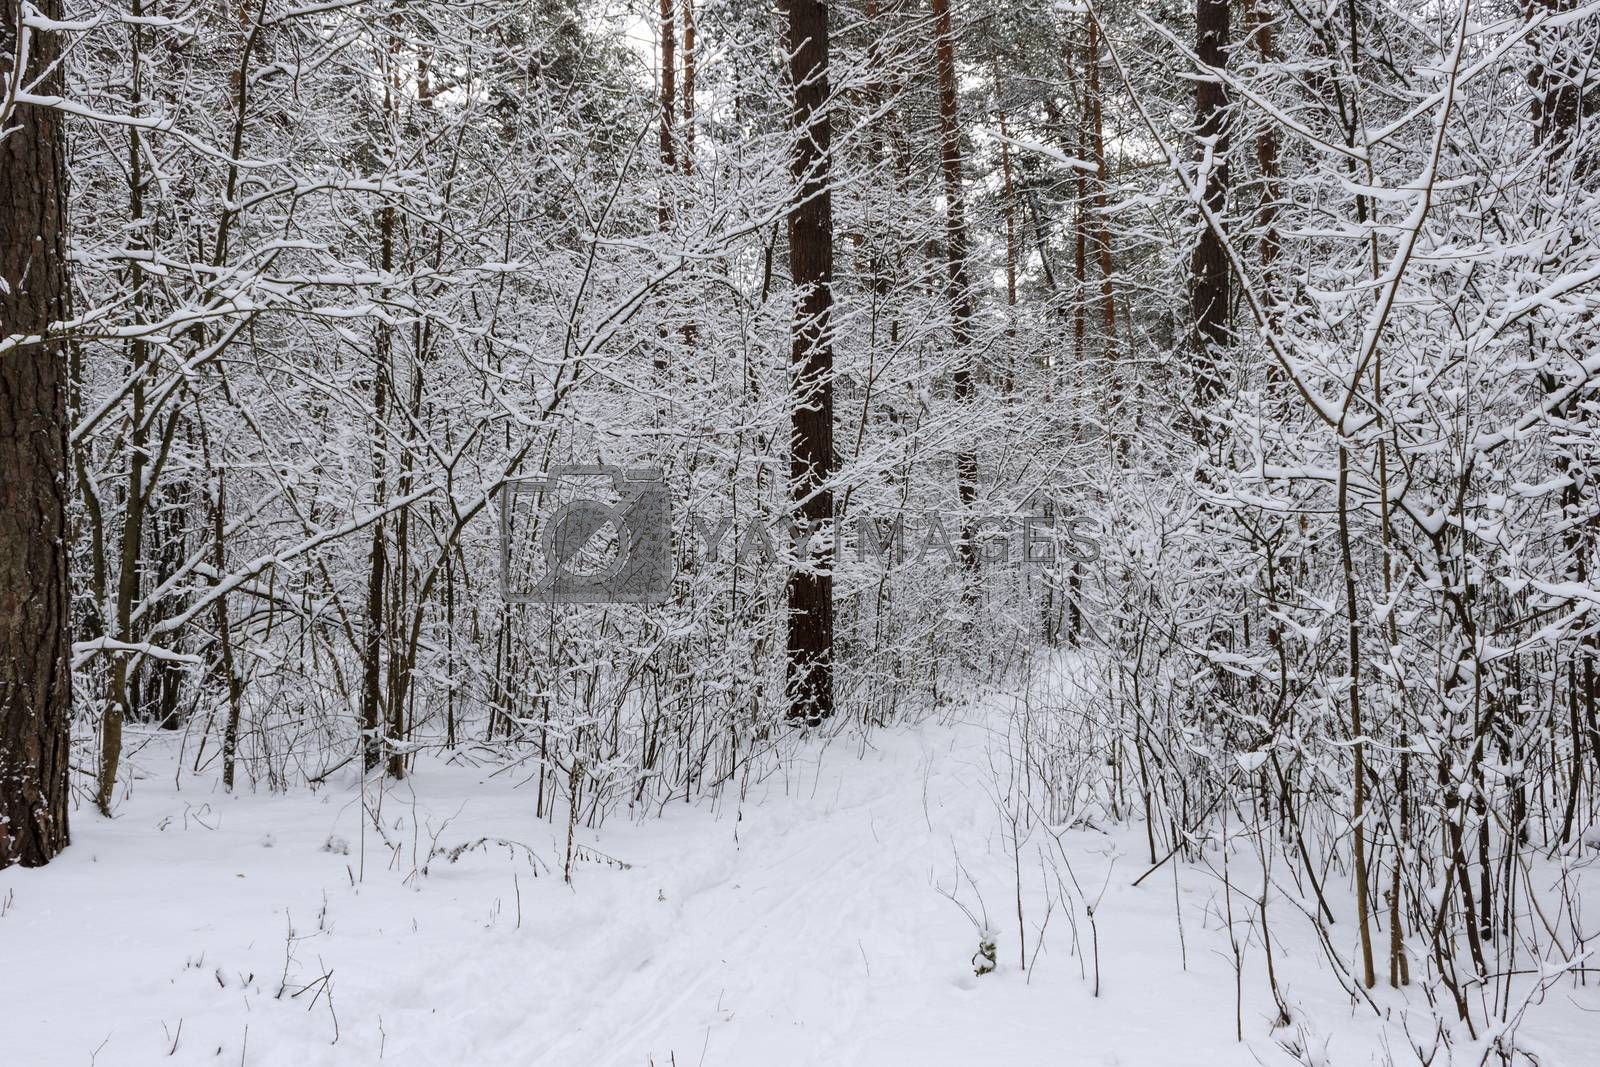 Pine forest covered with snow at winter